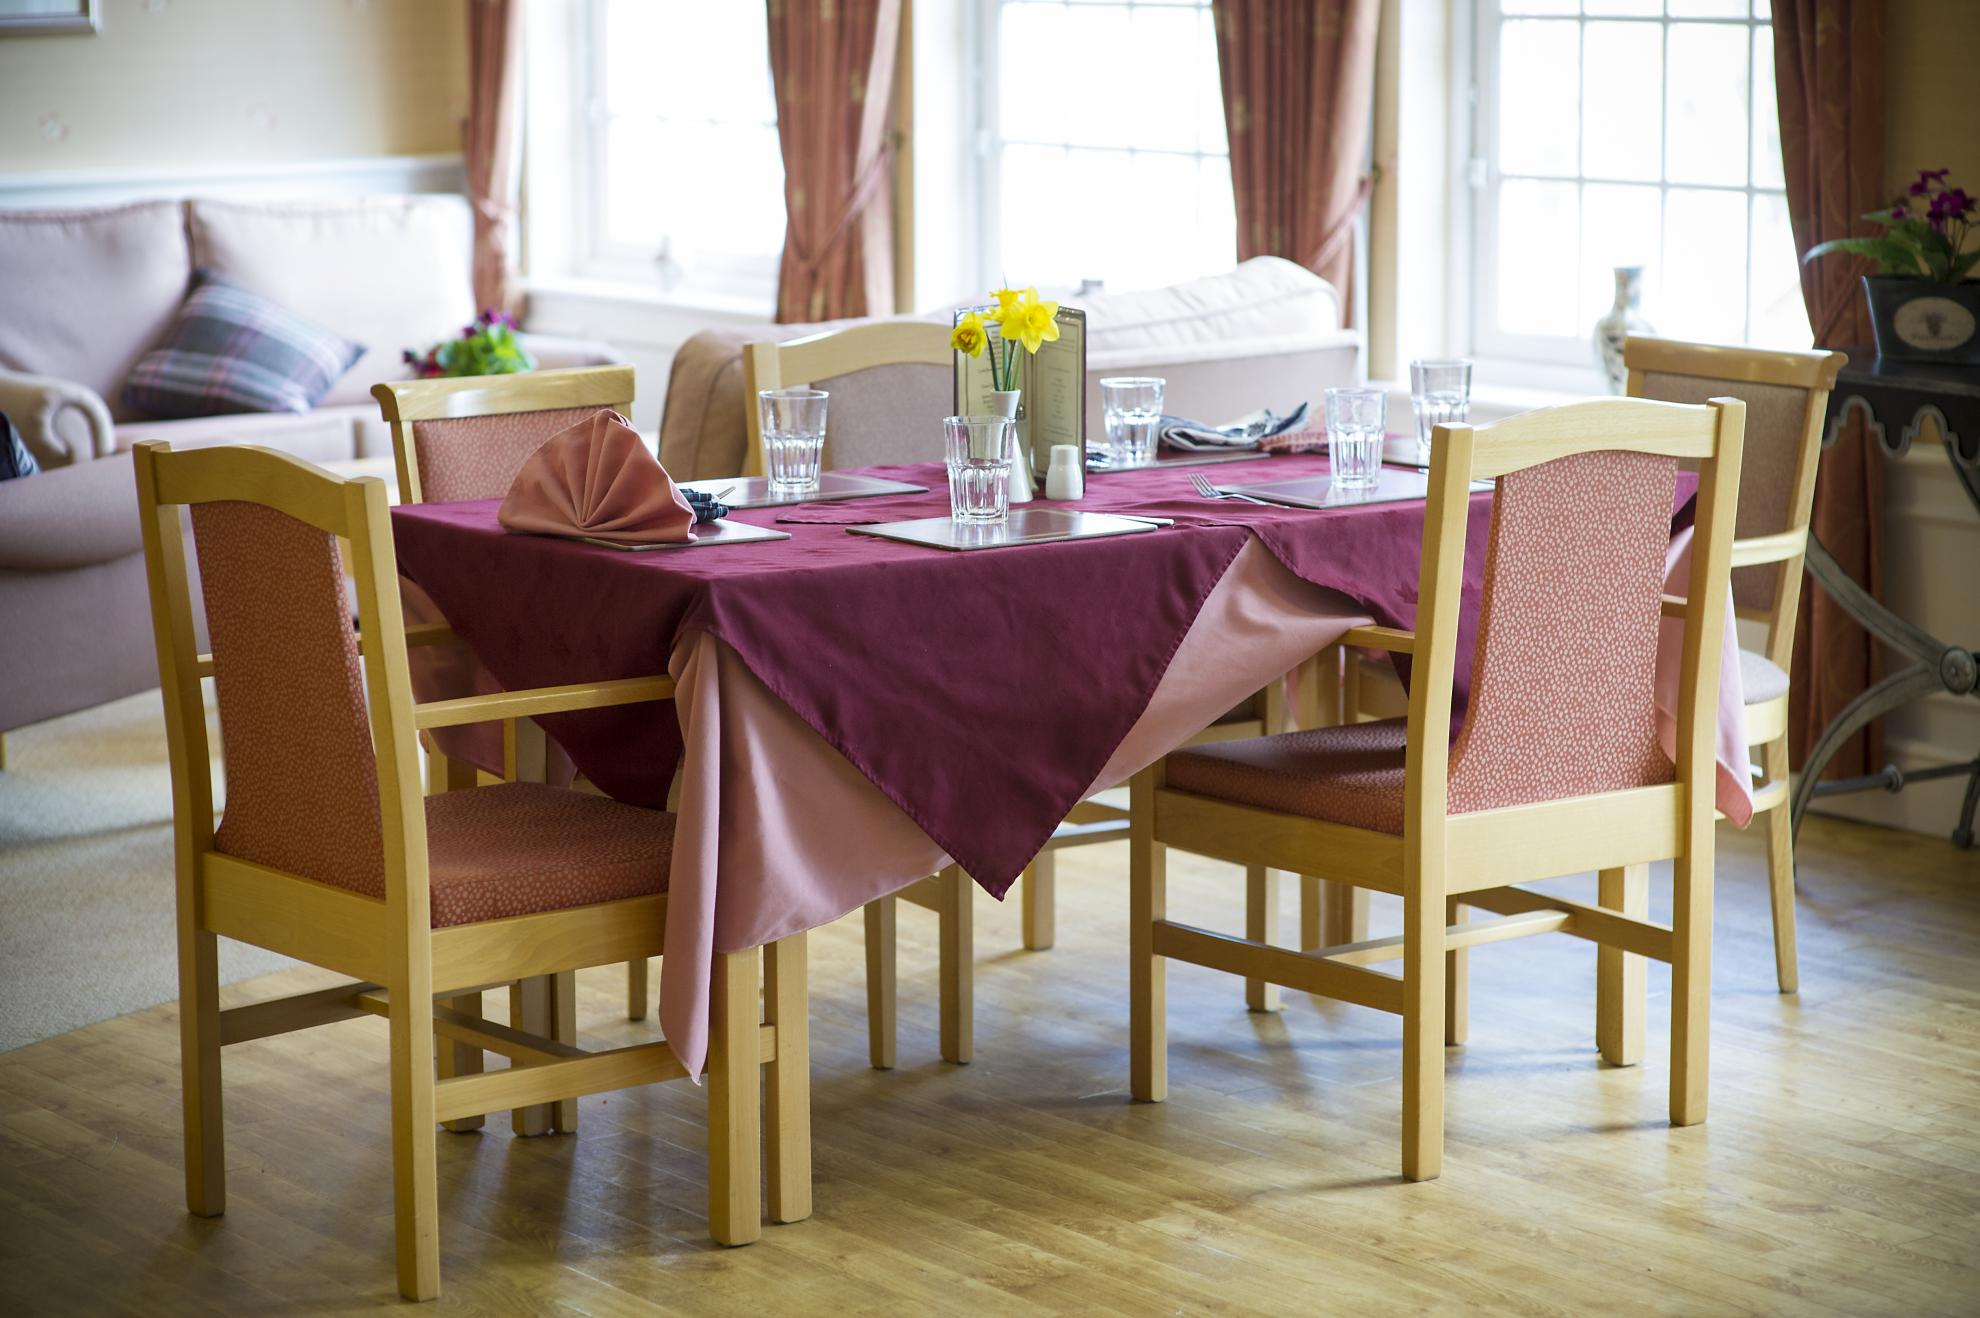 Types Of Learning Disabilities >> Dementia and Nursing Care Home in Oxfordshire – Watlington and District | Sanctuary Care